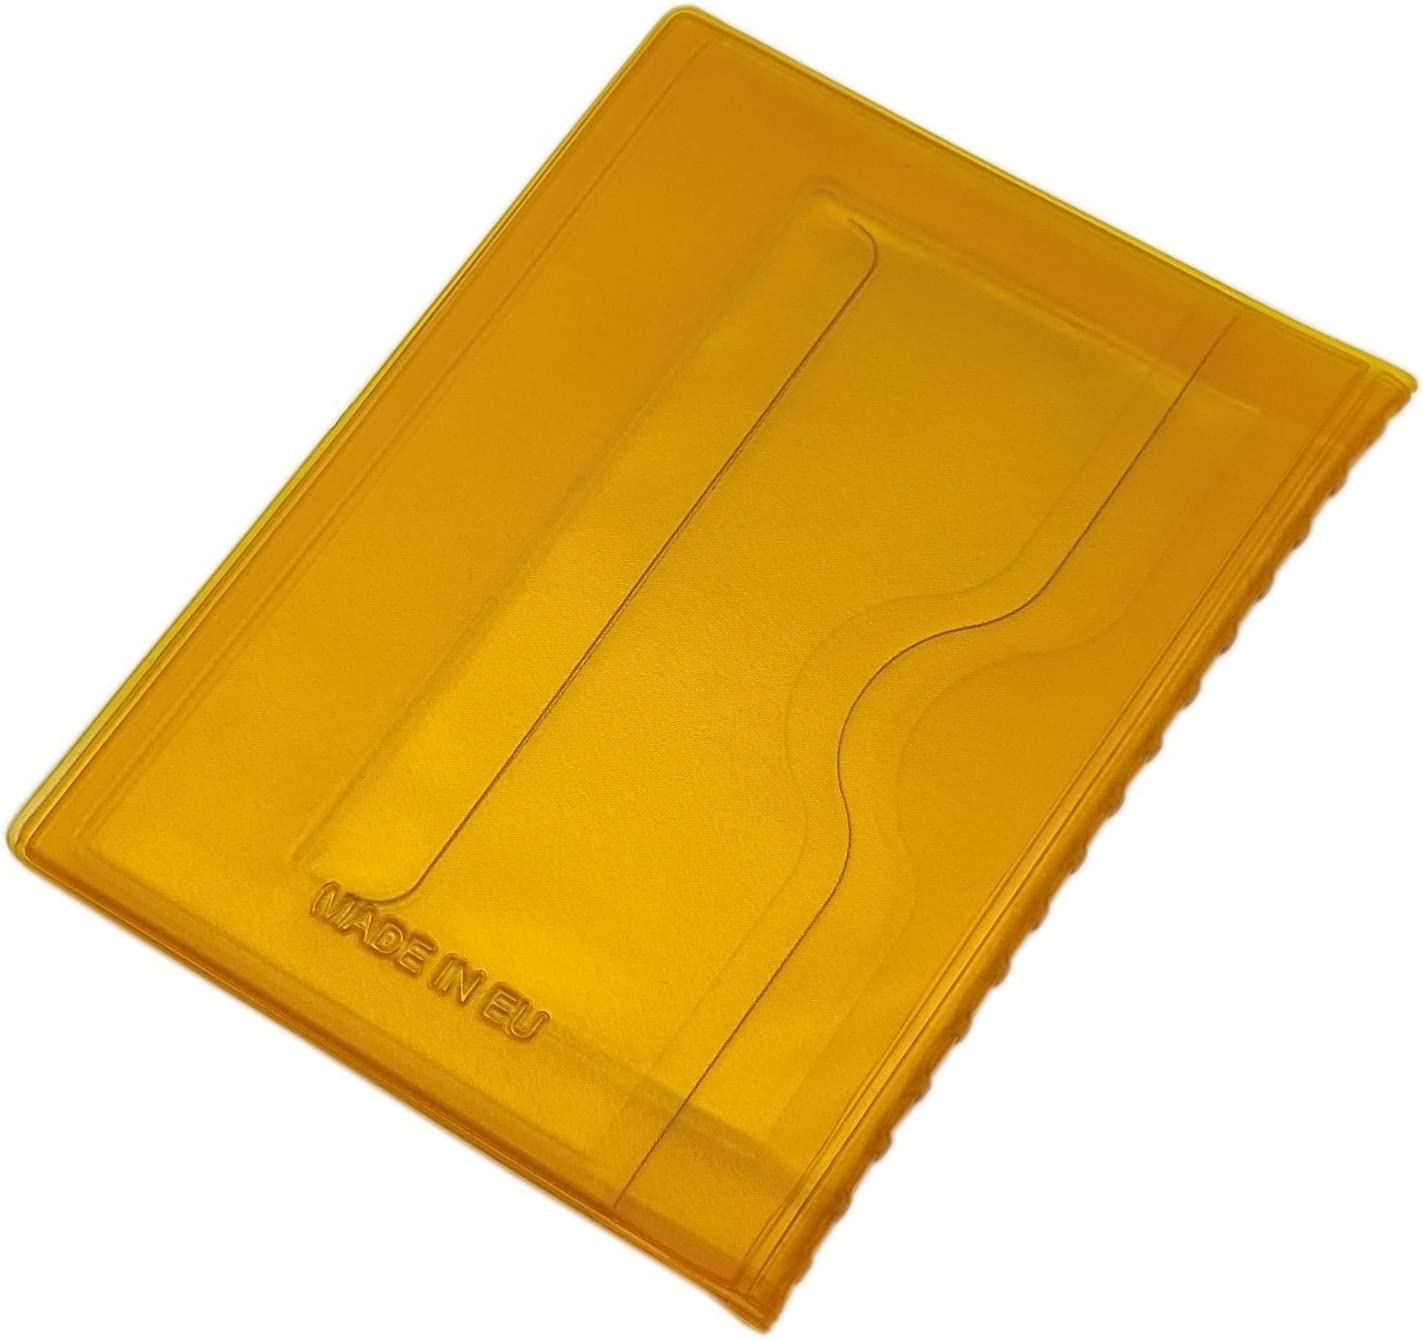 Green Practical ID and Credit Card Holder 10 Pockets MJ-Design-Germany Made in EU in Different Trendy Colors